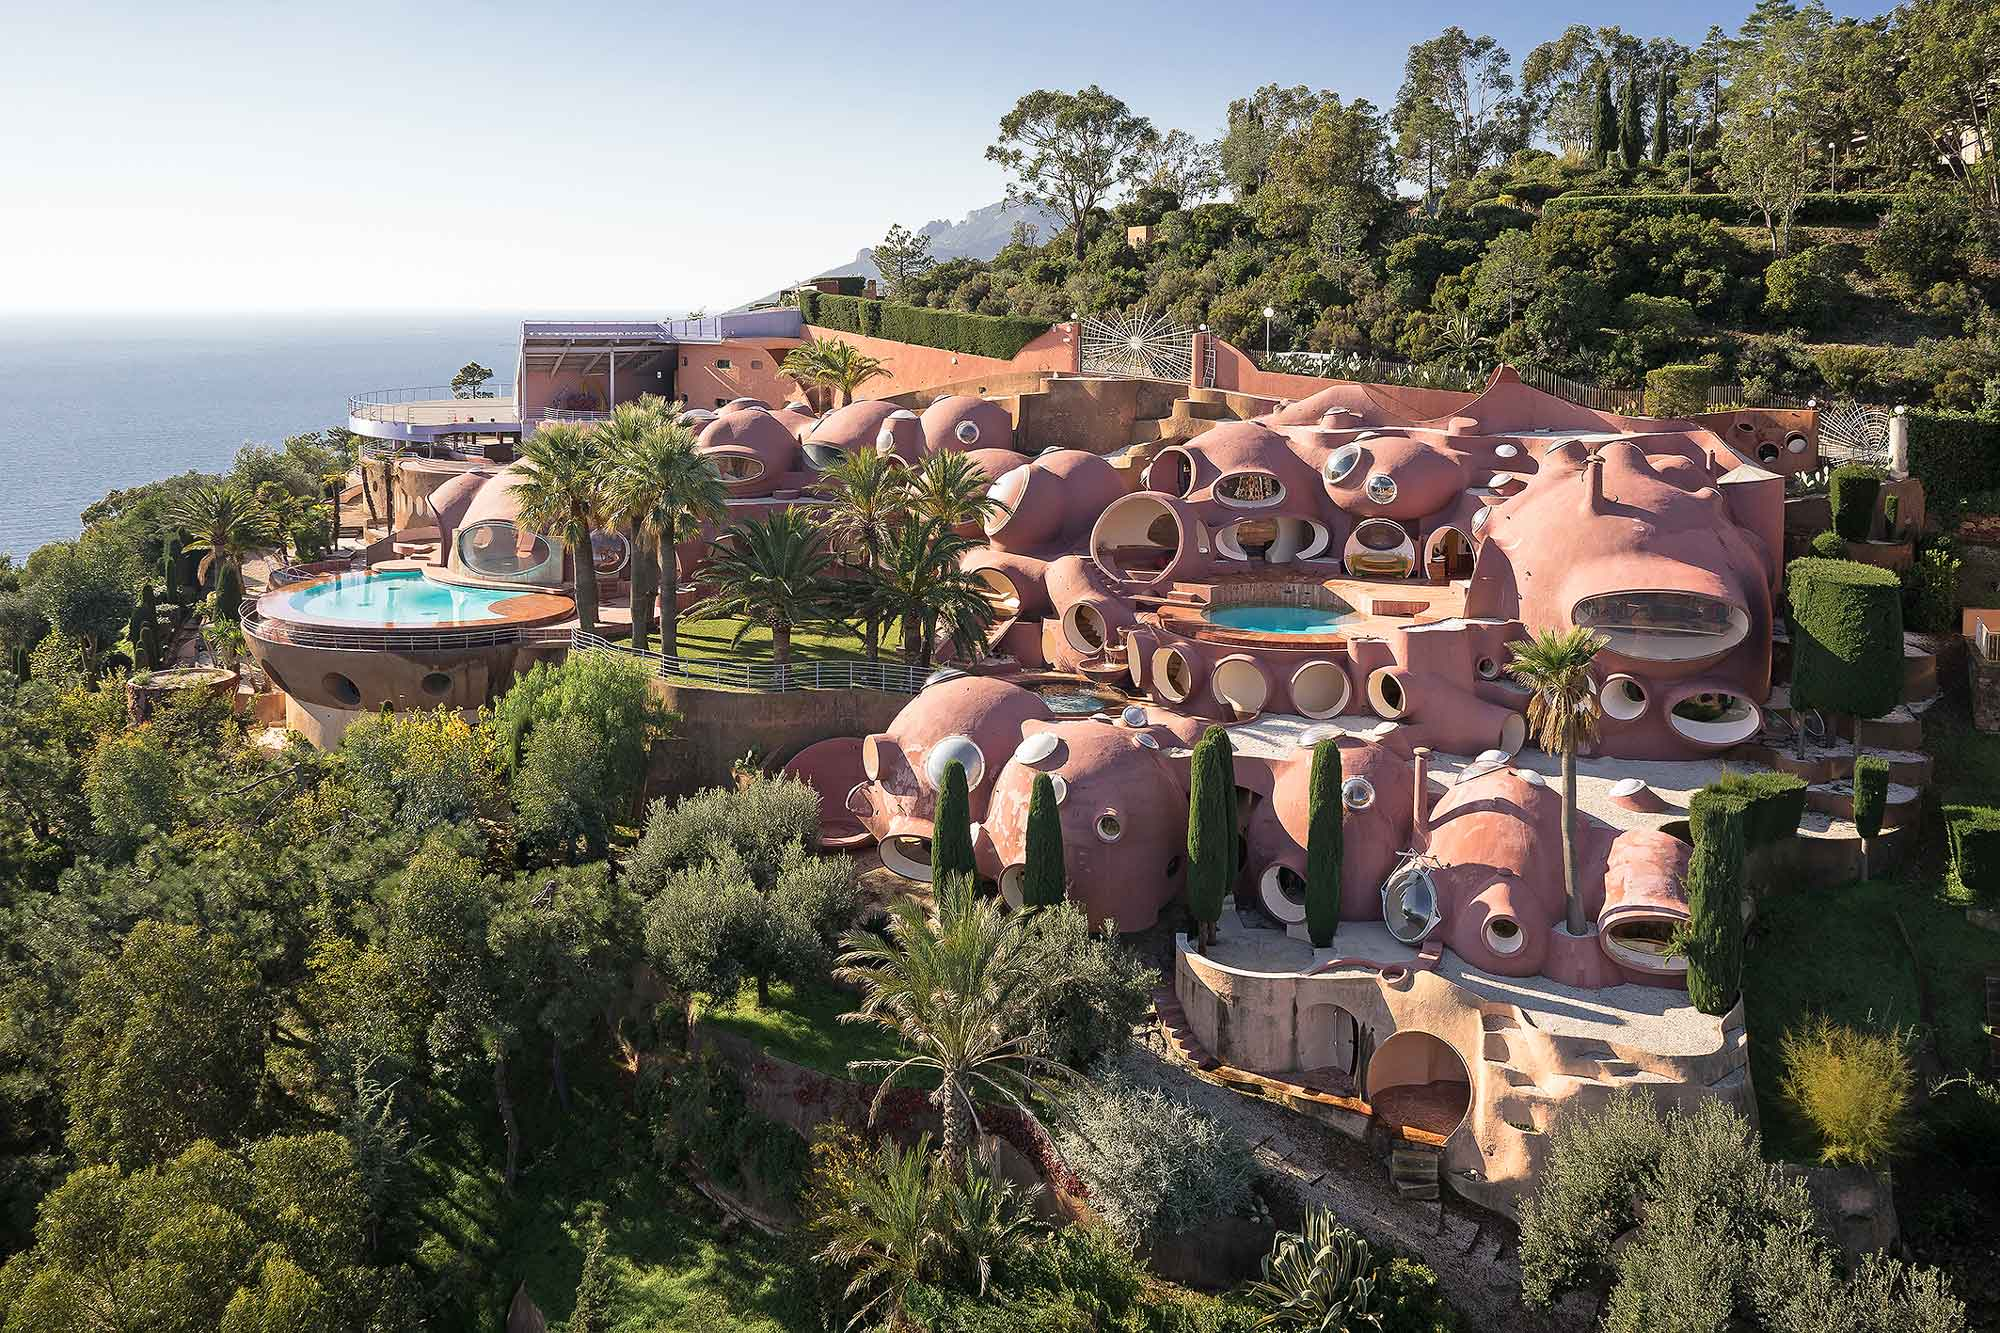 Pierre Cardin's iconic Bubble Palace was designed by Hungarian architect Antti Lovag. The unique living spaces are composed of interconnecting terracotta orbs which flow into beautiful gardens overlooking the Bay of Cannes.